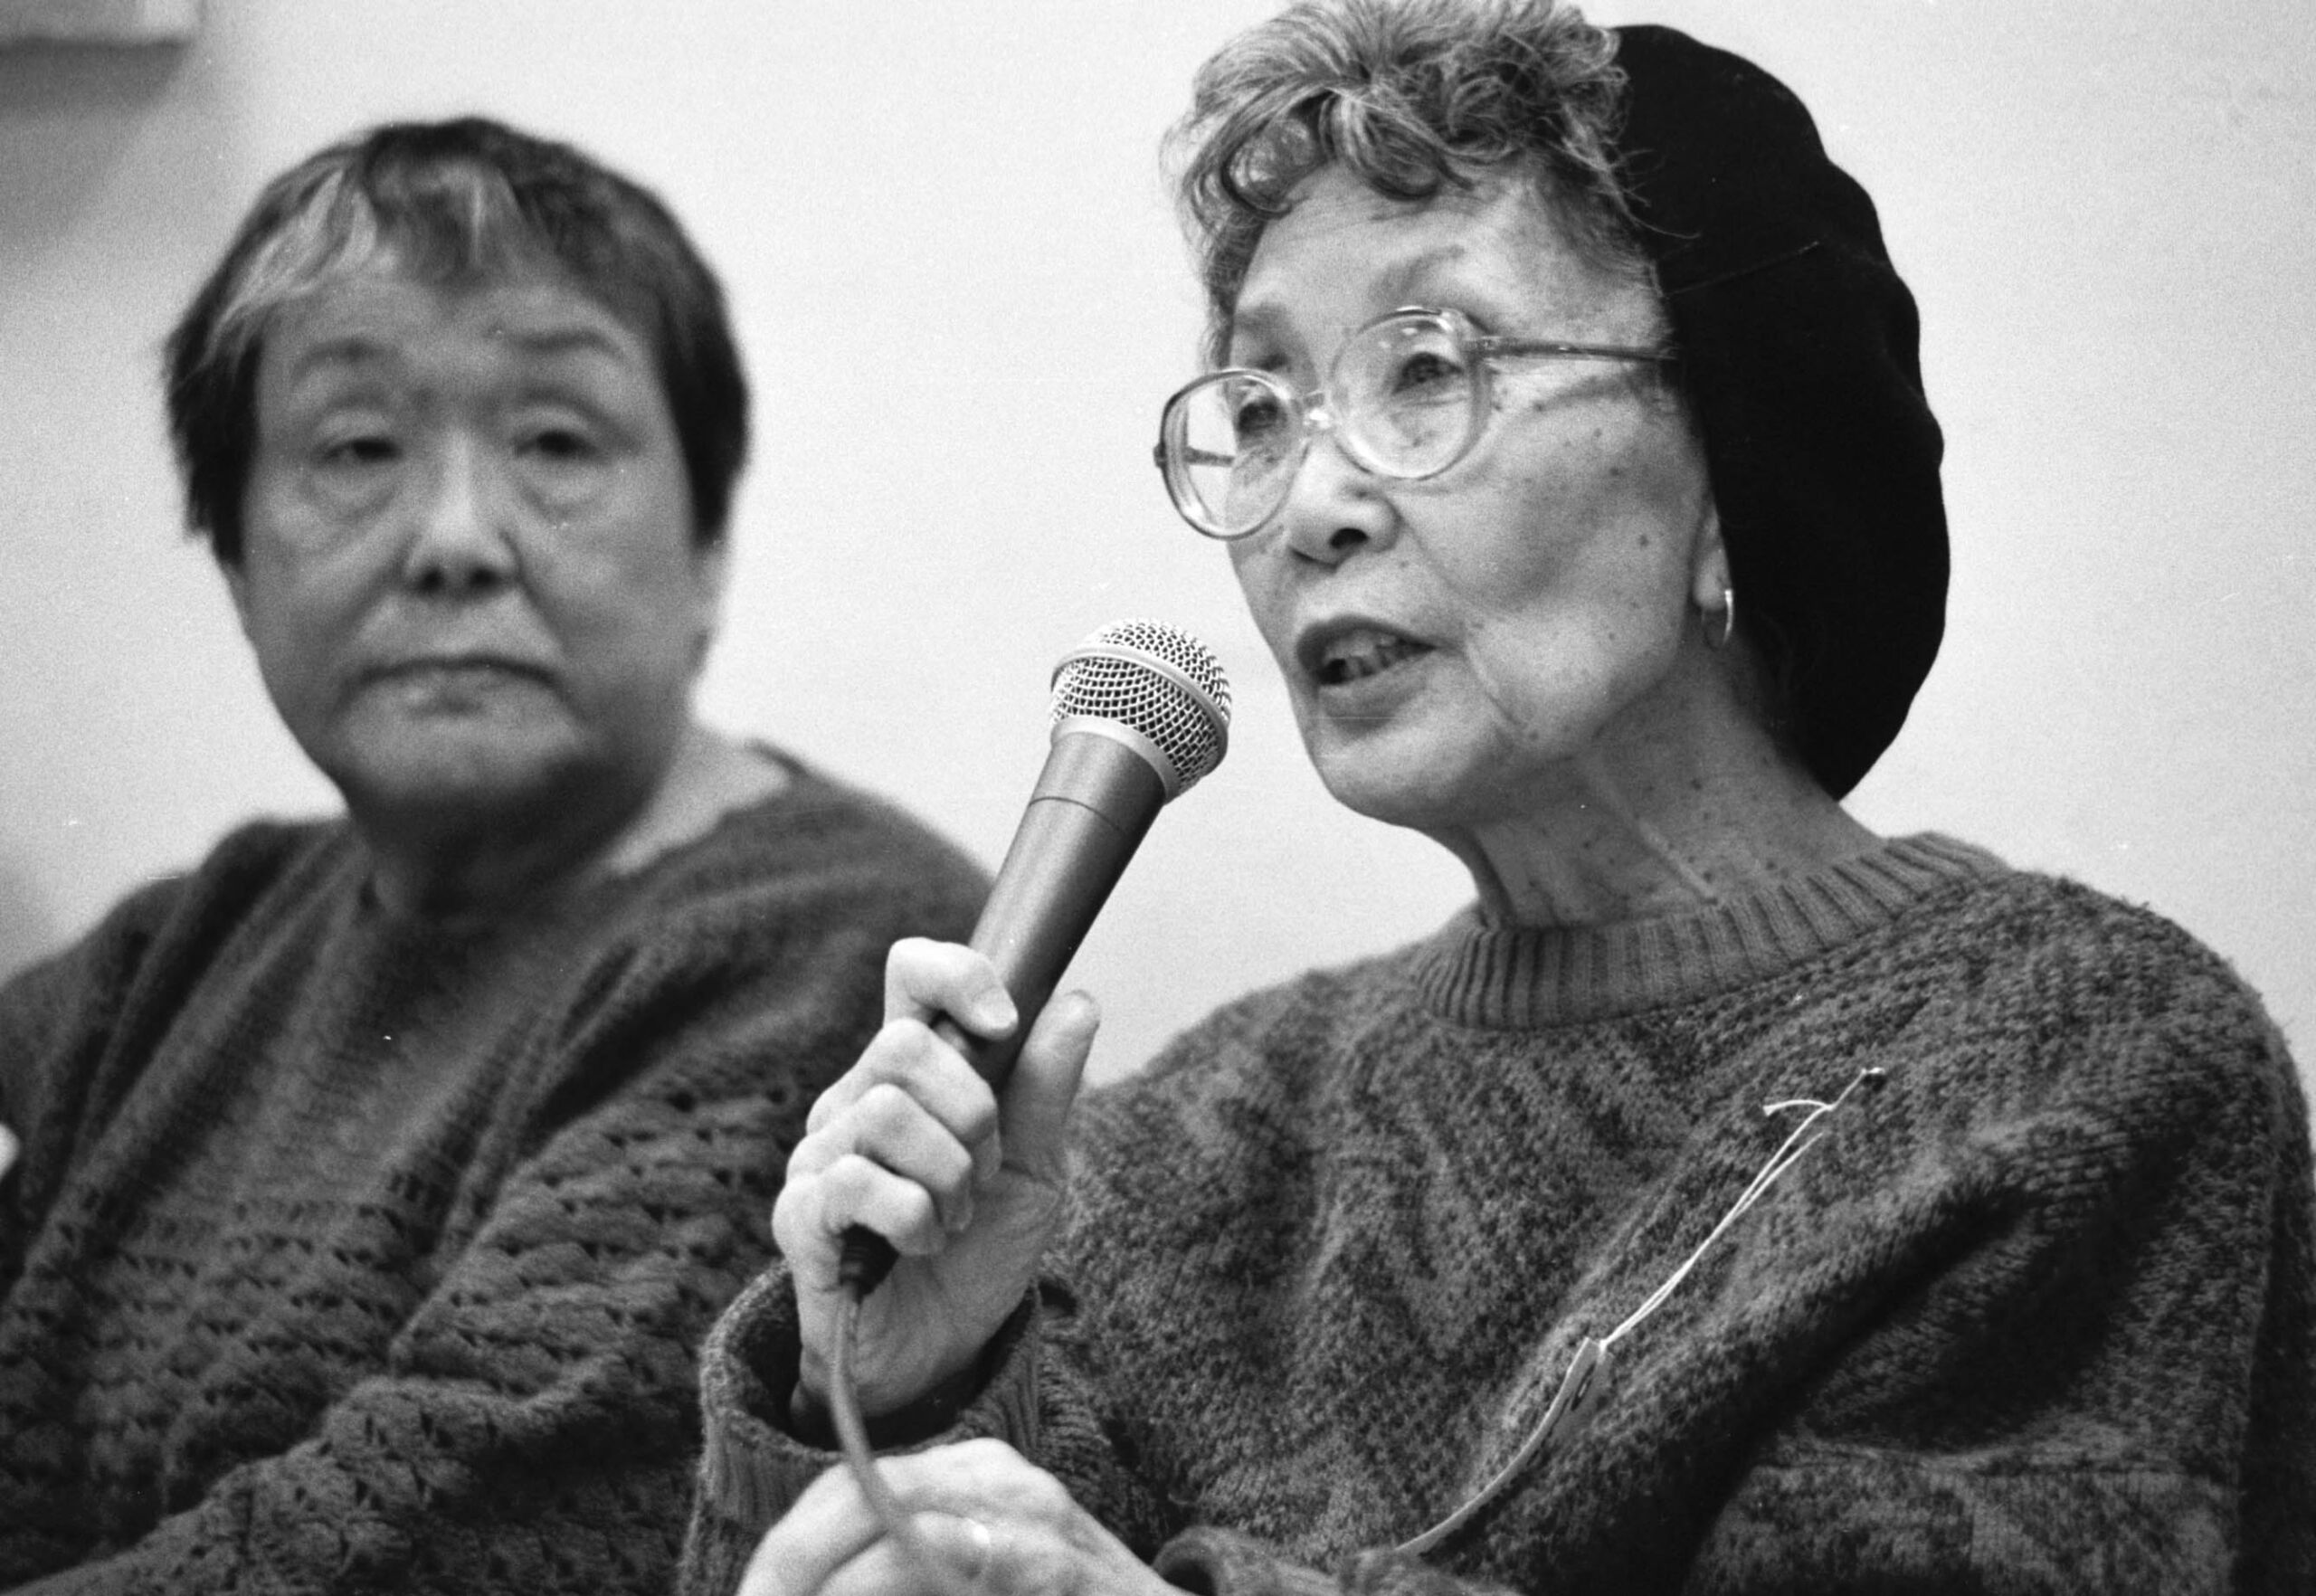 Black and white photo of older Asian woman with eyeglasse, hair tucked in a dark knit hat, sweater speaking into a microphone she holds. To her left, an older Asian woman with short hair and sweater looks at her.